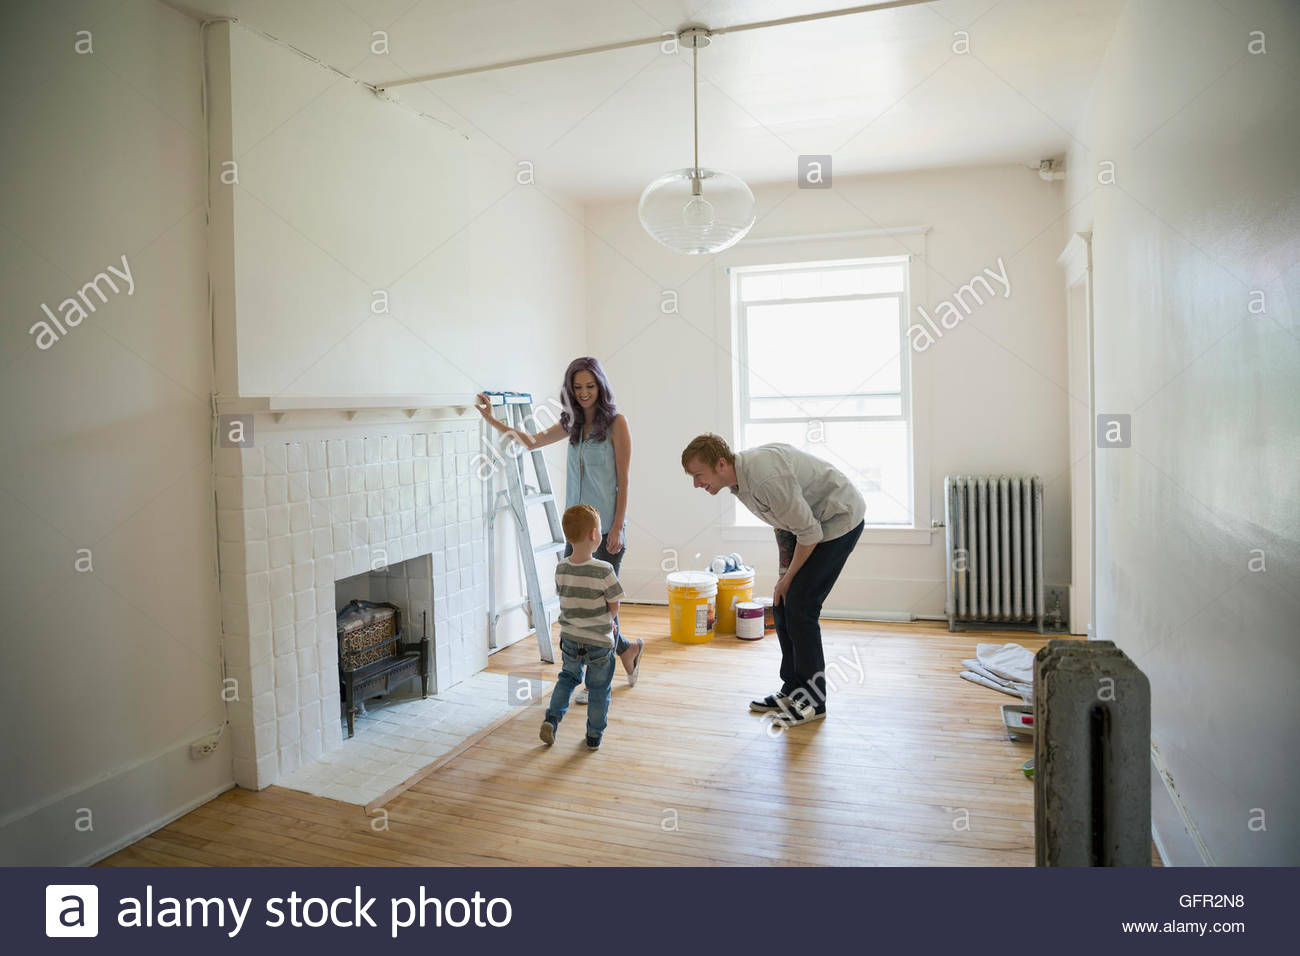 Young family in living room of empty new house - Stock Image